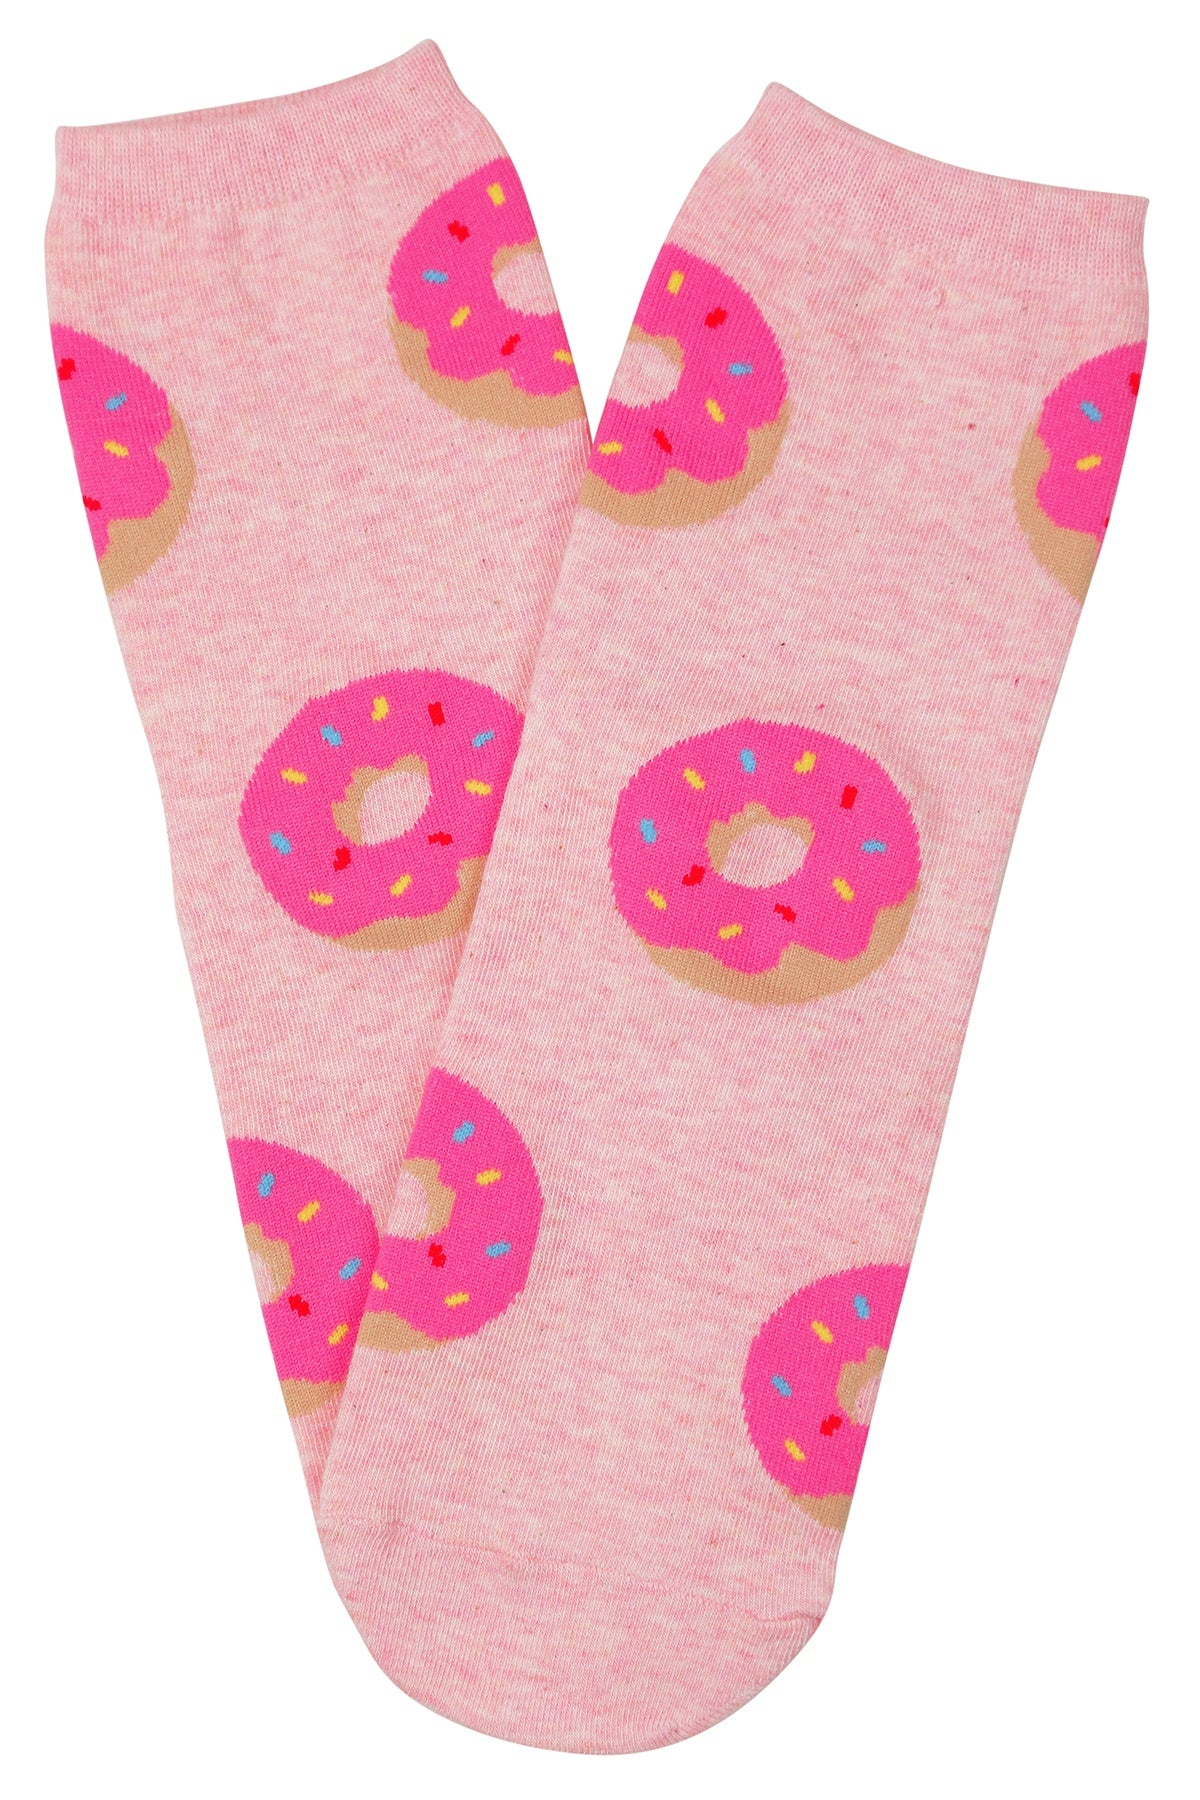 Iced Donut Cotton Socks Pink